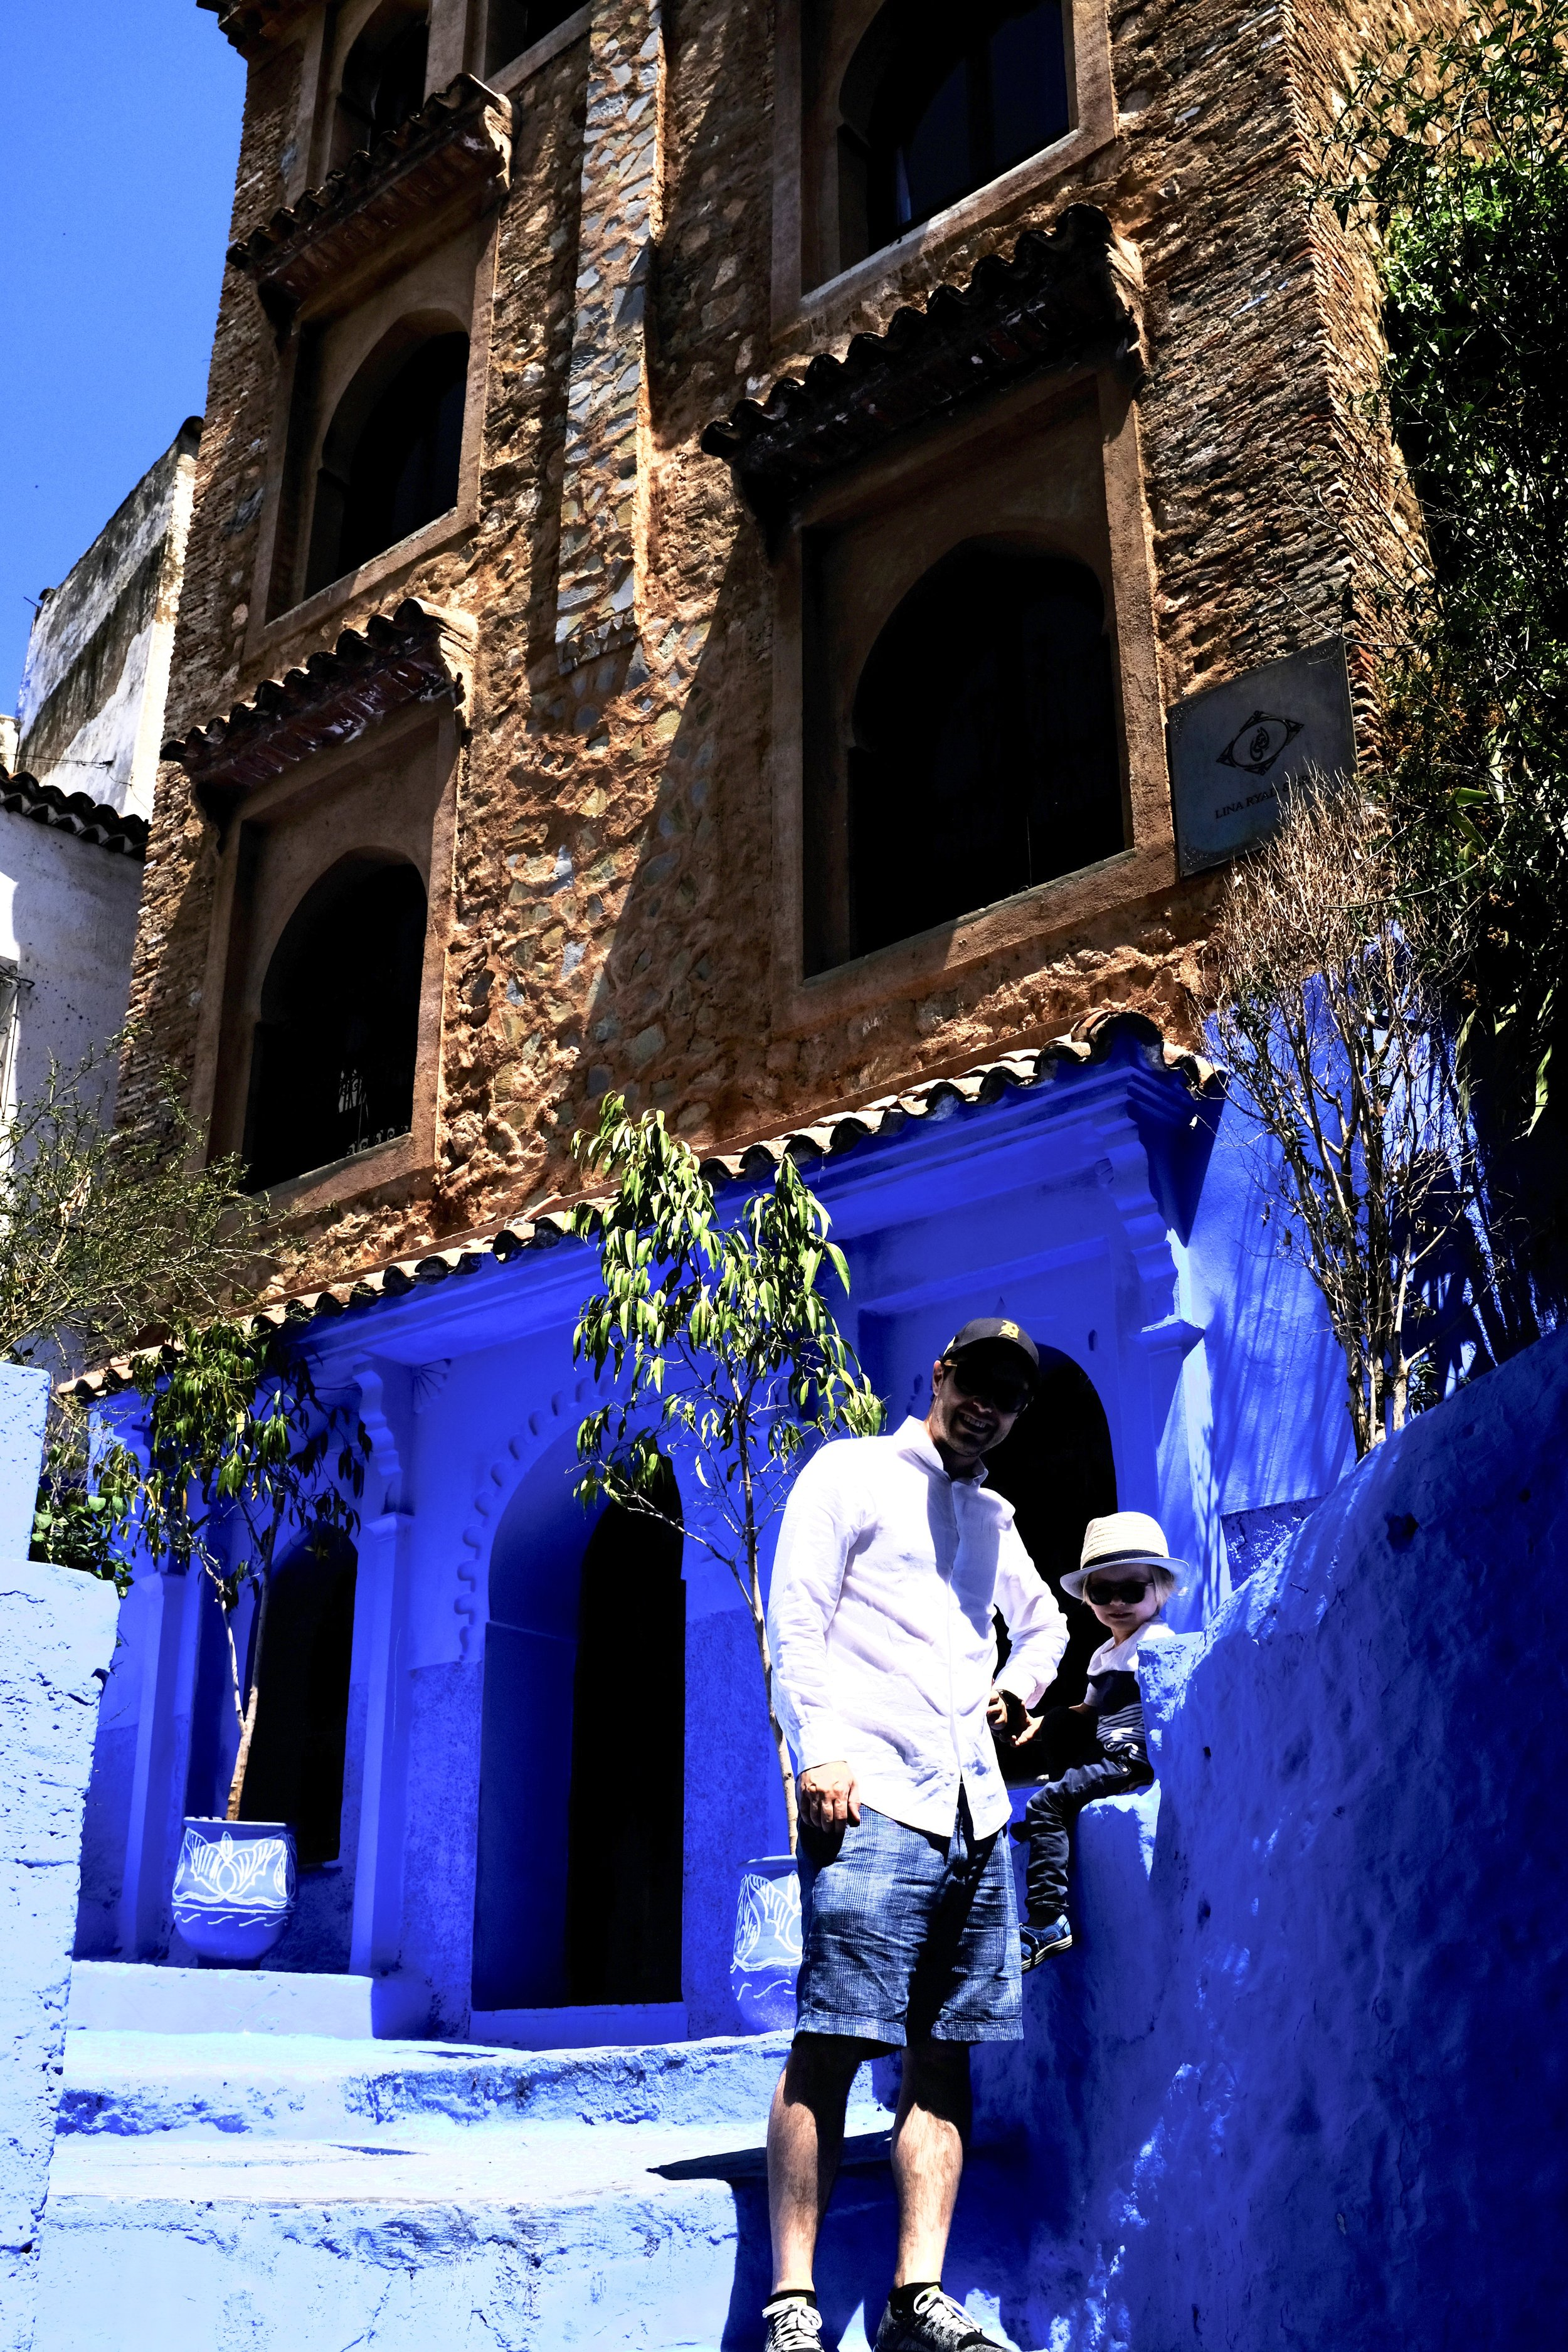 Lina Ryad and Spa_City Nibbler_Chefchaouen Morocco